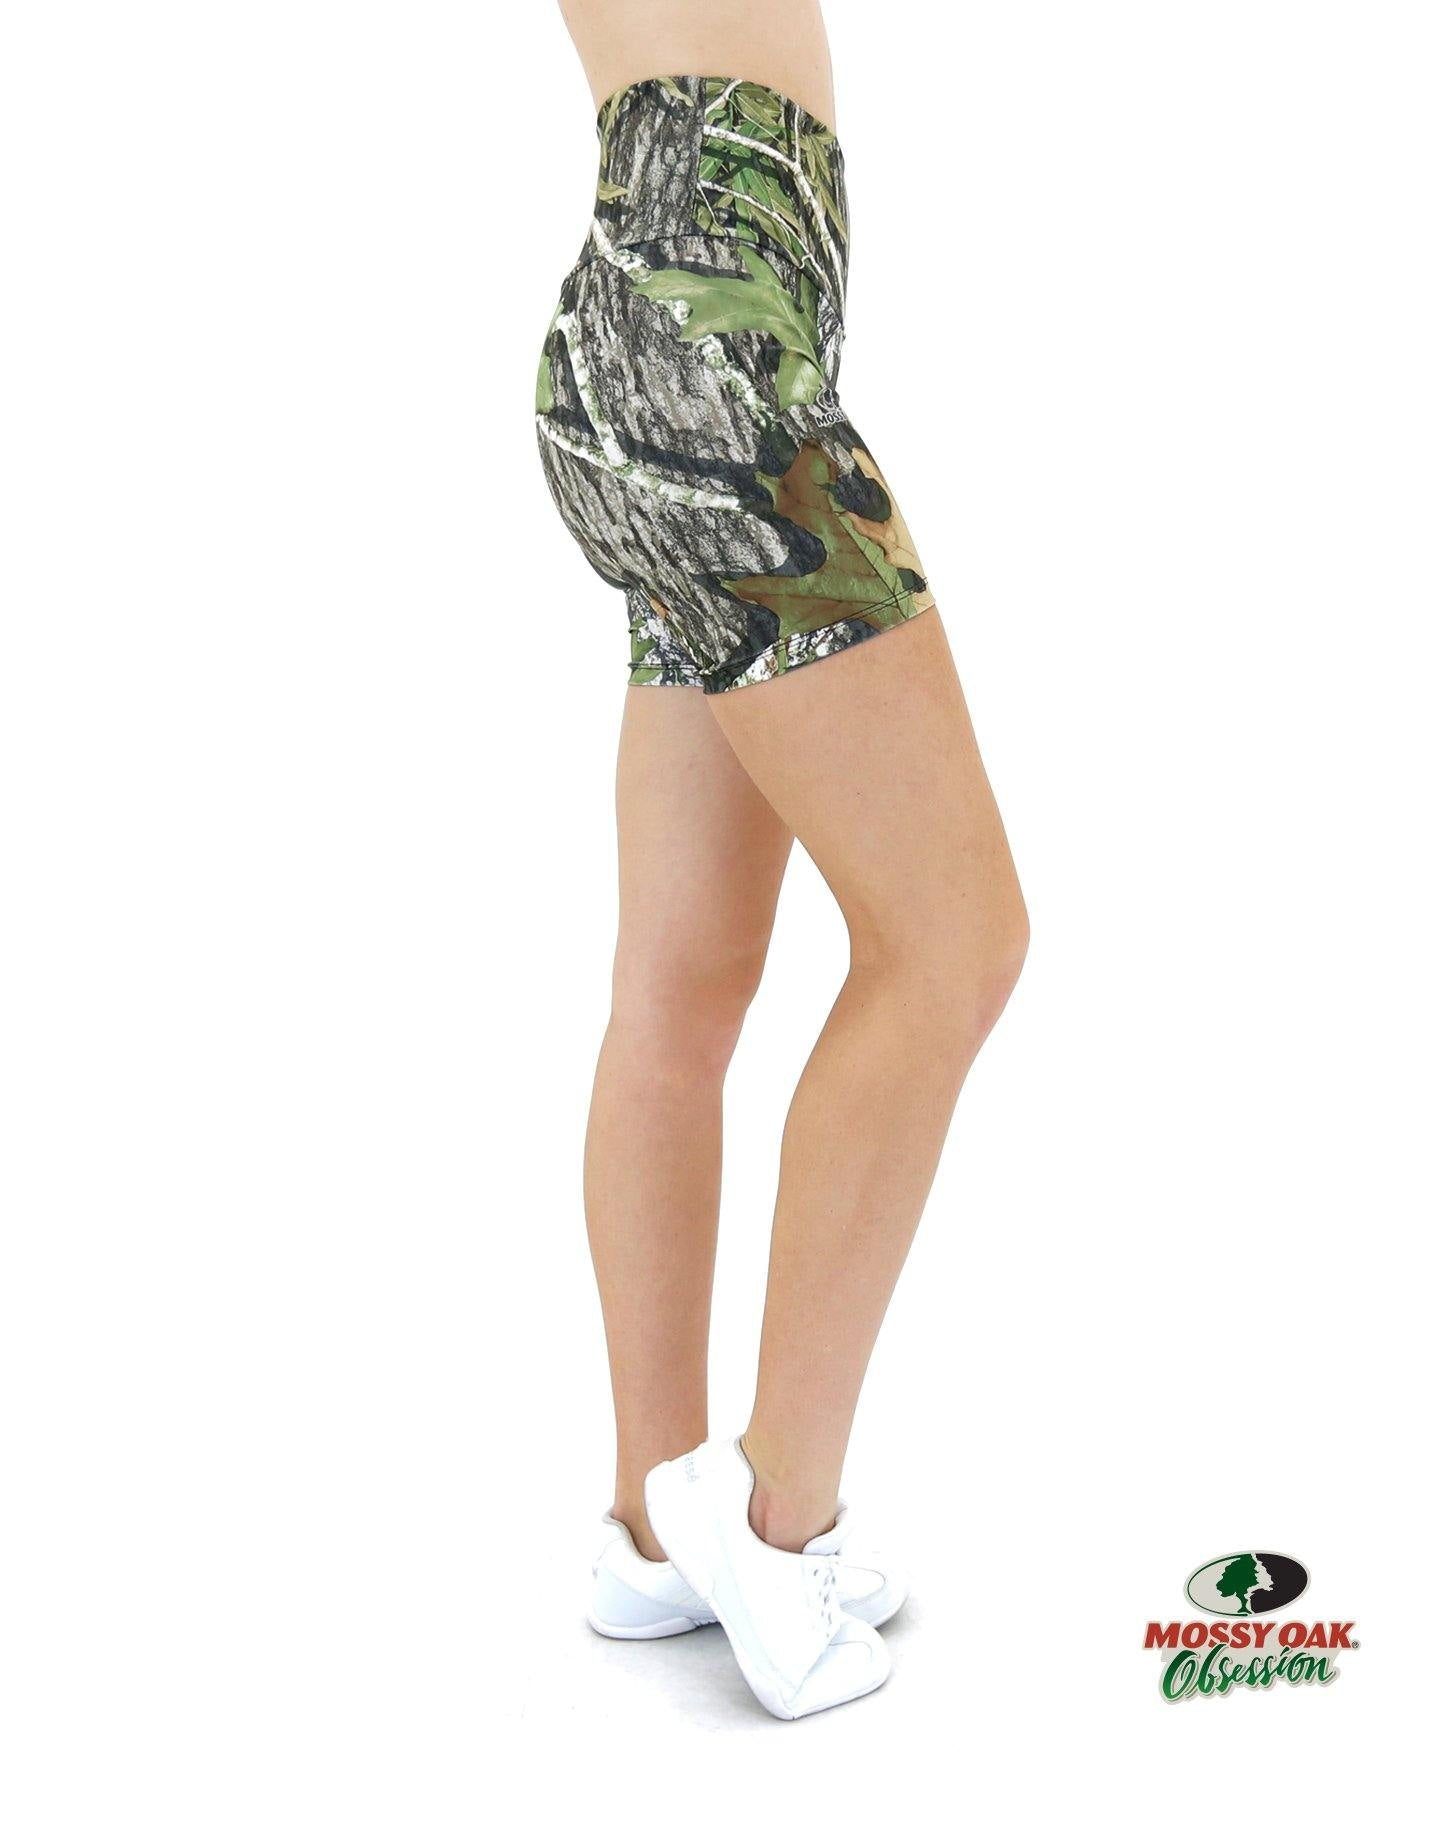 Apsara Shorts High Waist, Mossy Oak Obsession